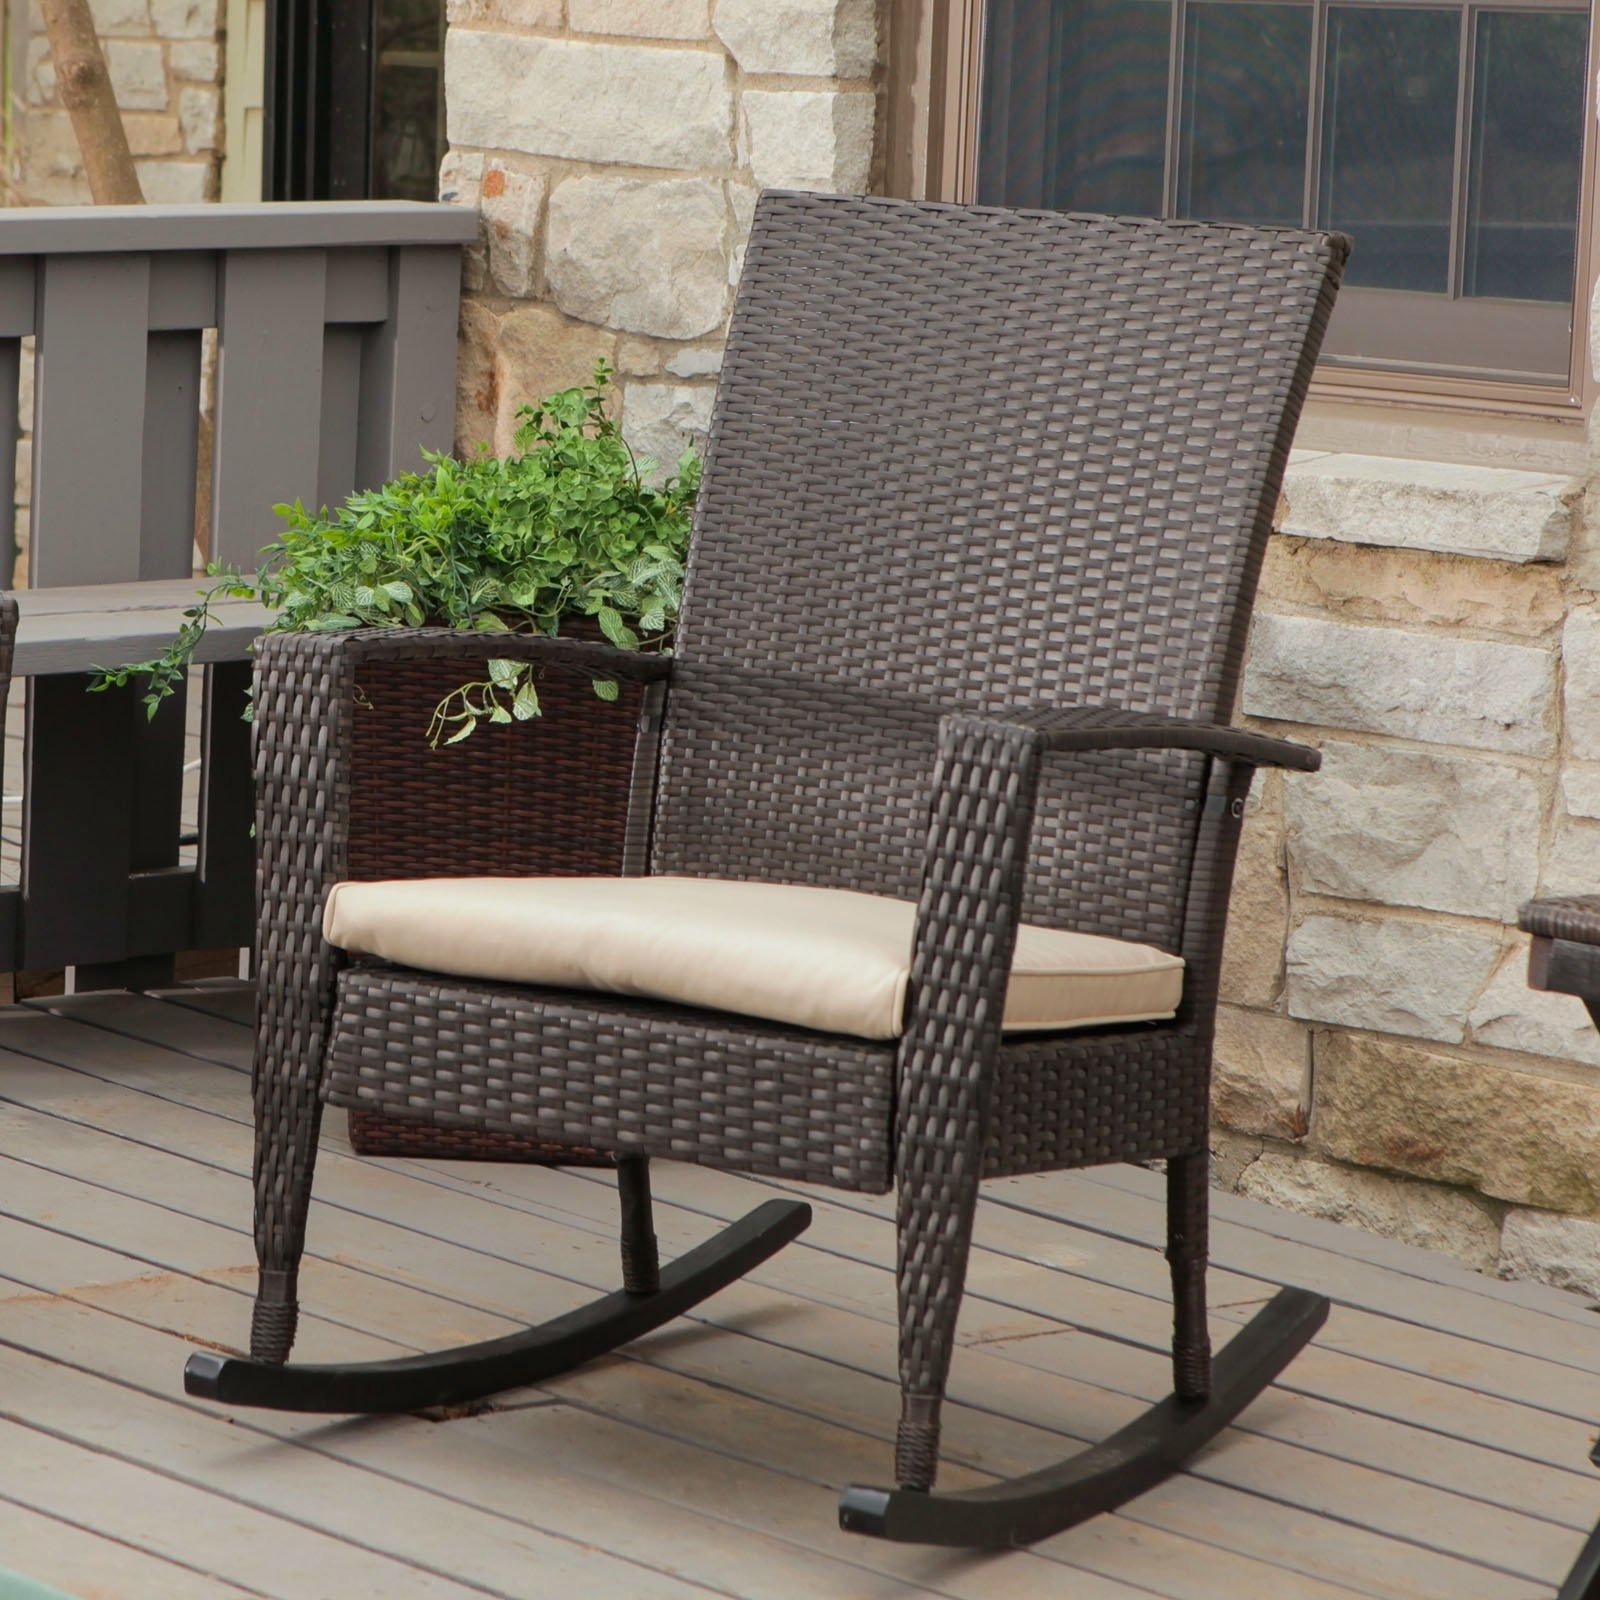 2018 Fine Rocking Chair Cushion Outdoor In Office Chairs Online With Inside Outdoor Rocking Chairs With Cushions (View 1 of 20)